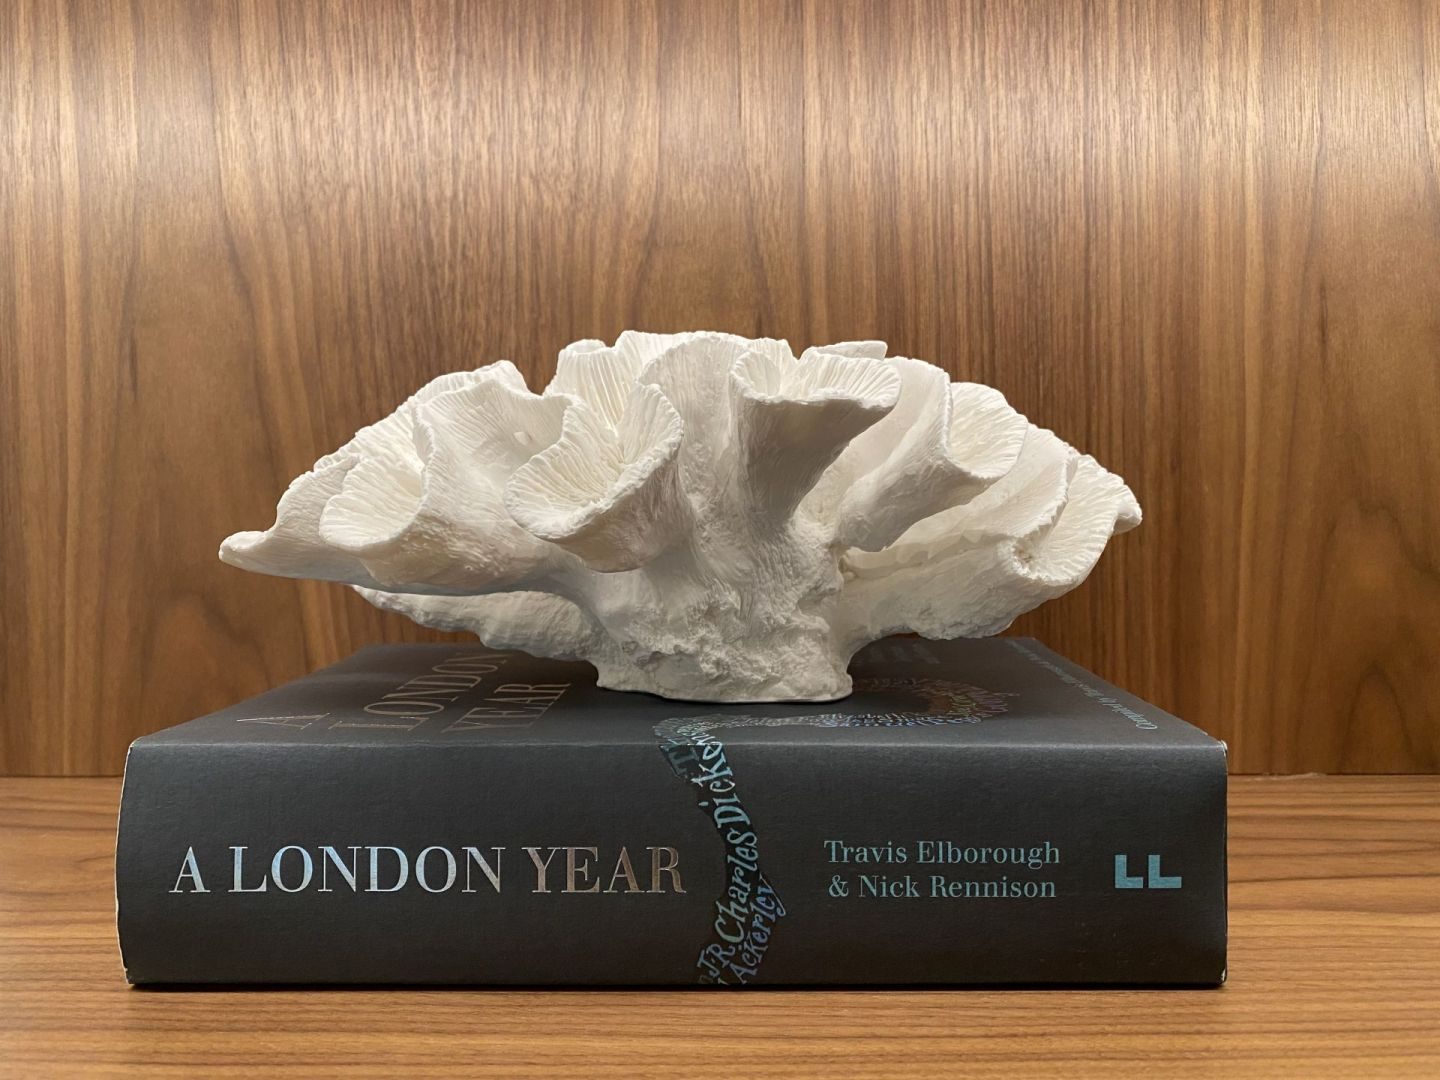 It's all in the details at the Middle Eight hotel - pic of book 'A London year'